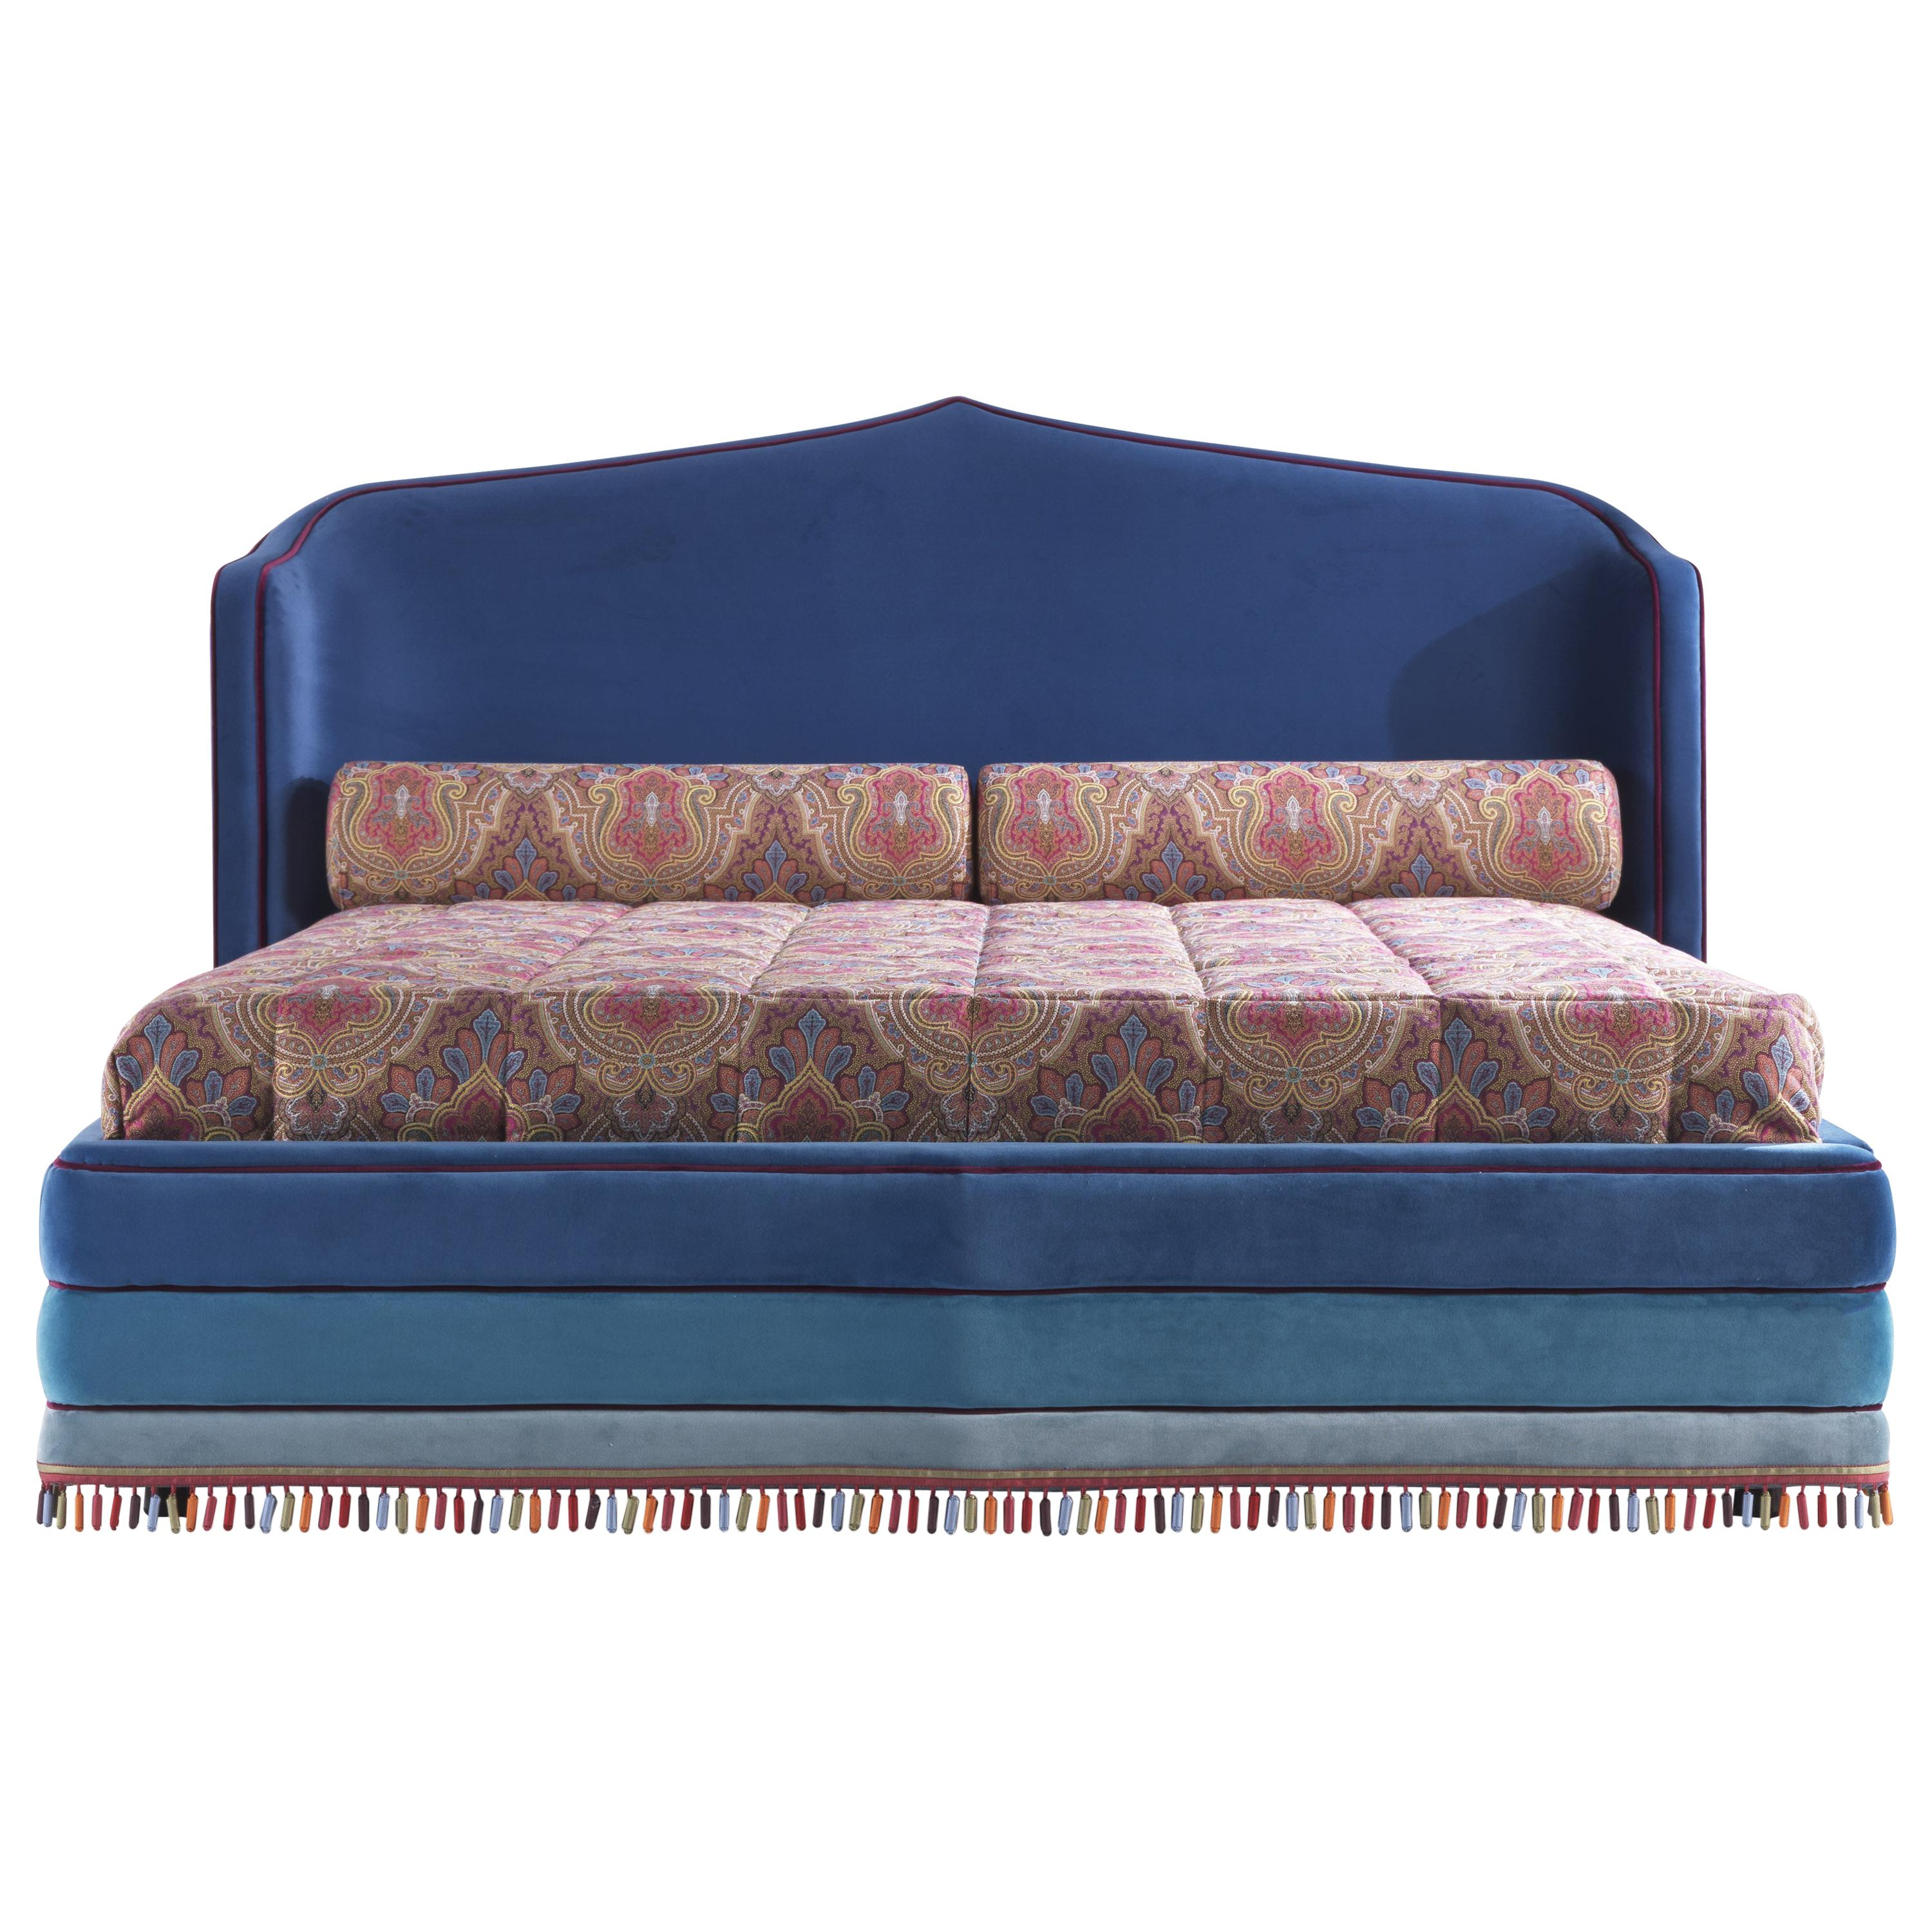 Etro Home Interiors Amina Large Bed in Velvet